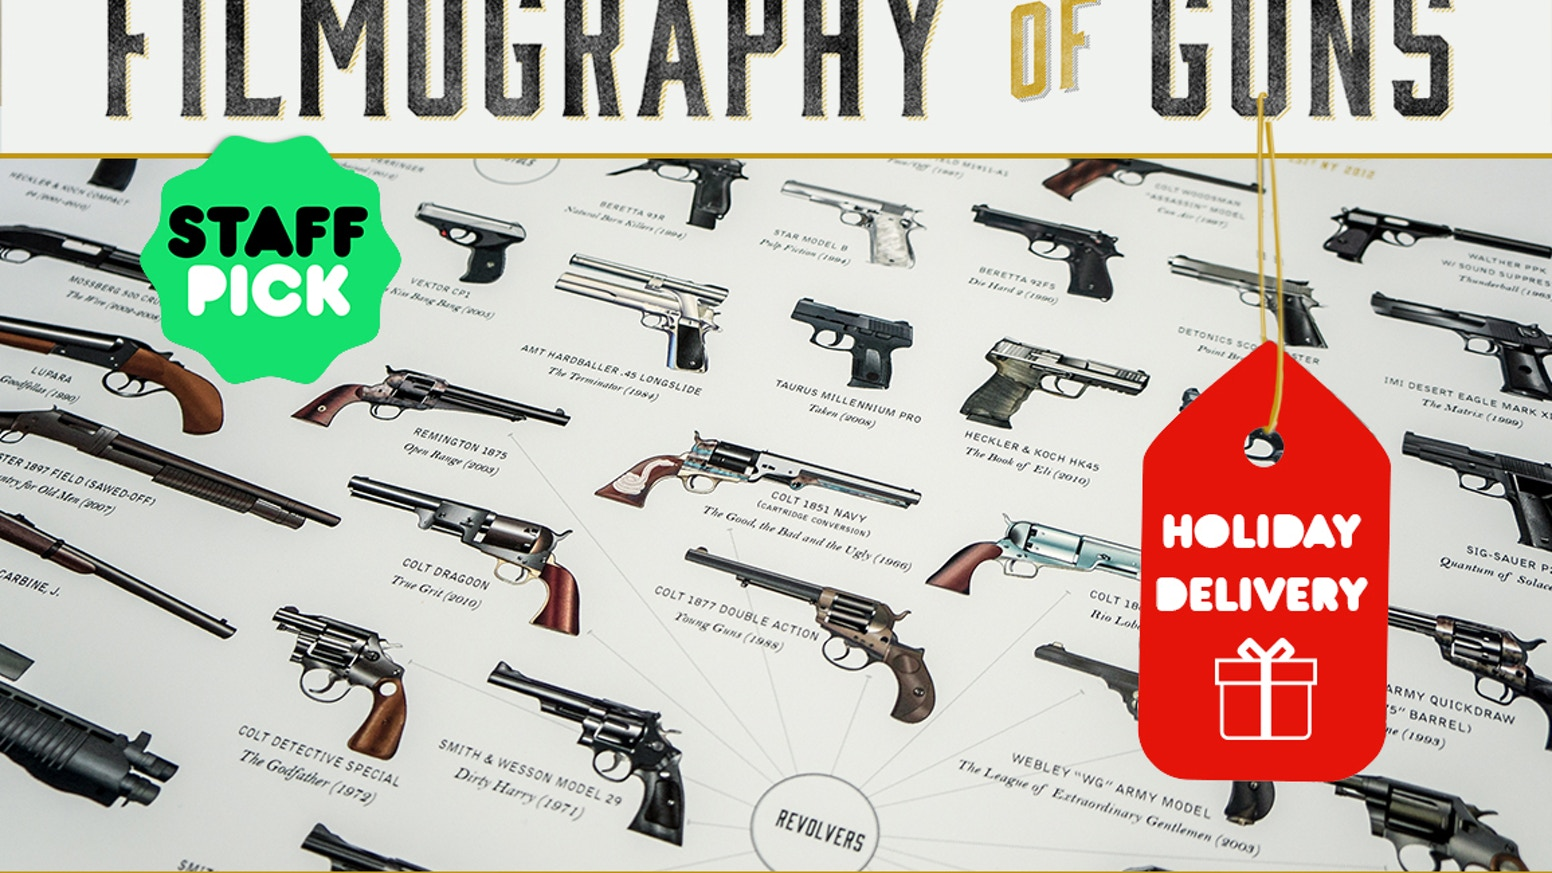 The Filmography of Guns by Cathryn Lavery » The Filmography